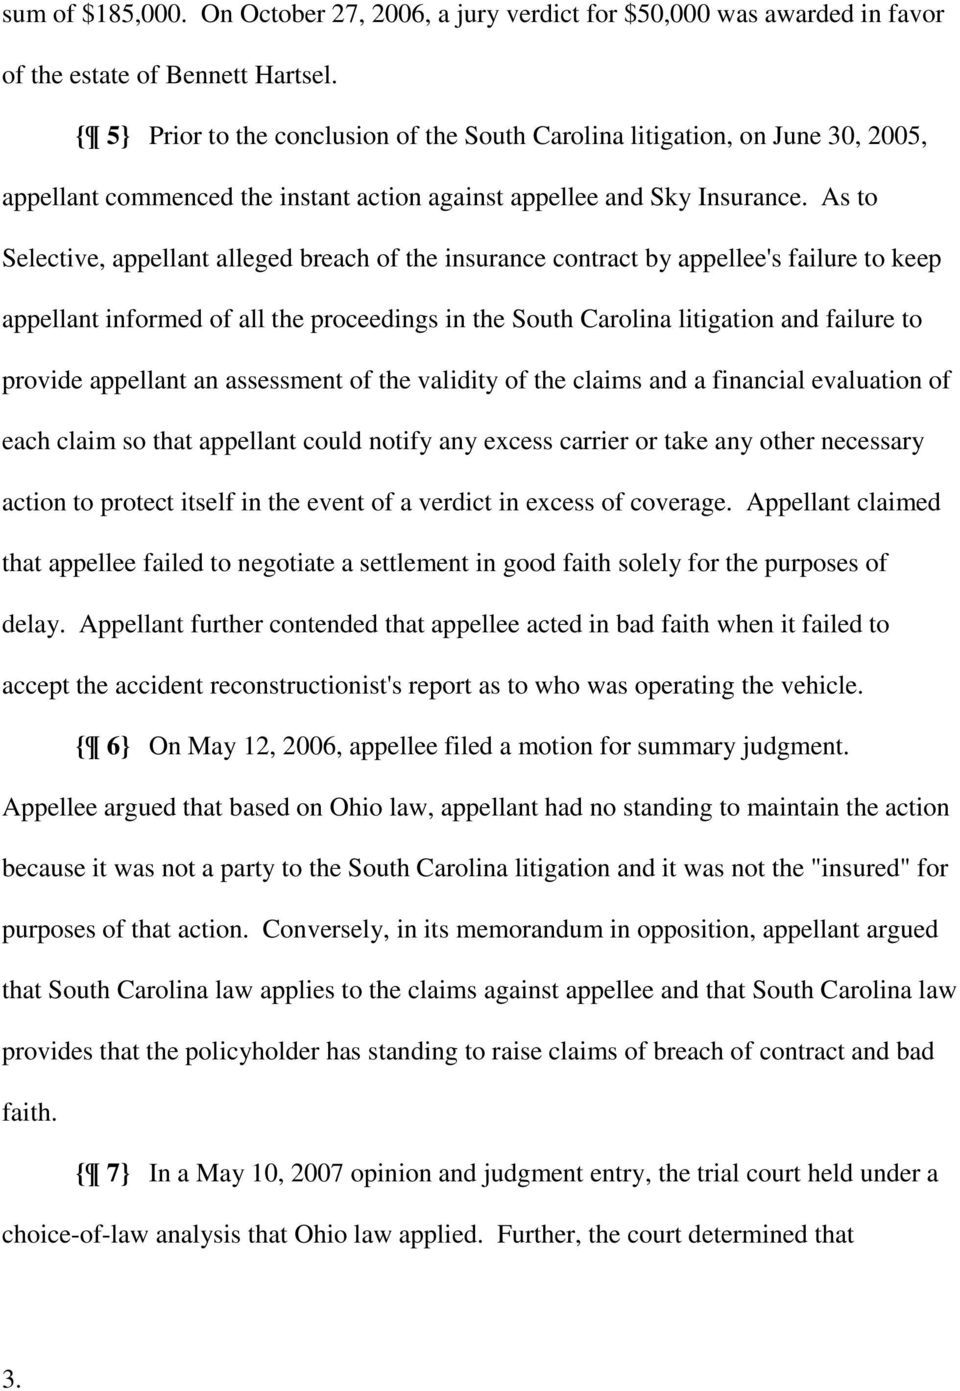 As to Selective, appellant alleged breach of the insurance contract by appellee's failure to keep appellant informed of all the proceedings in the South Carolina litigation and failure to provide